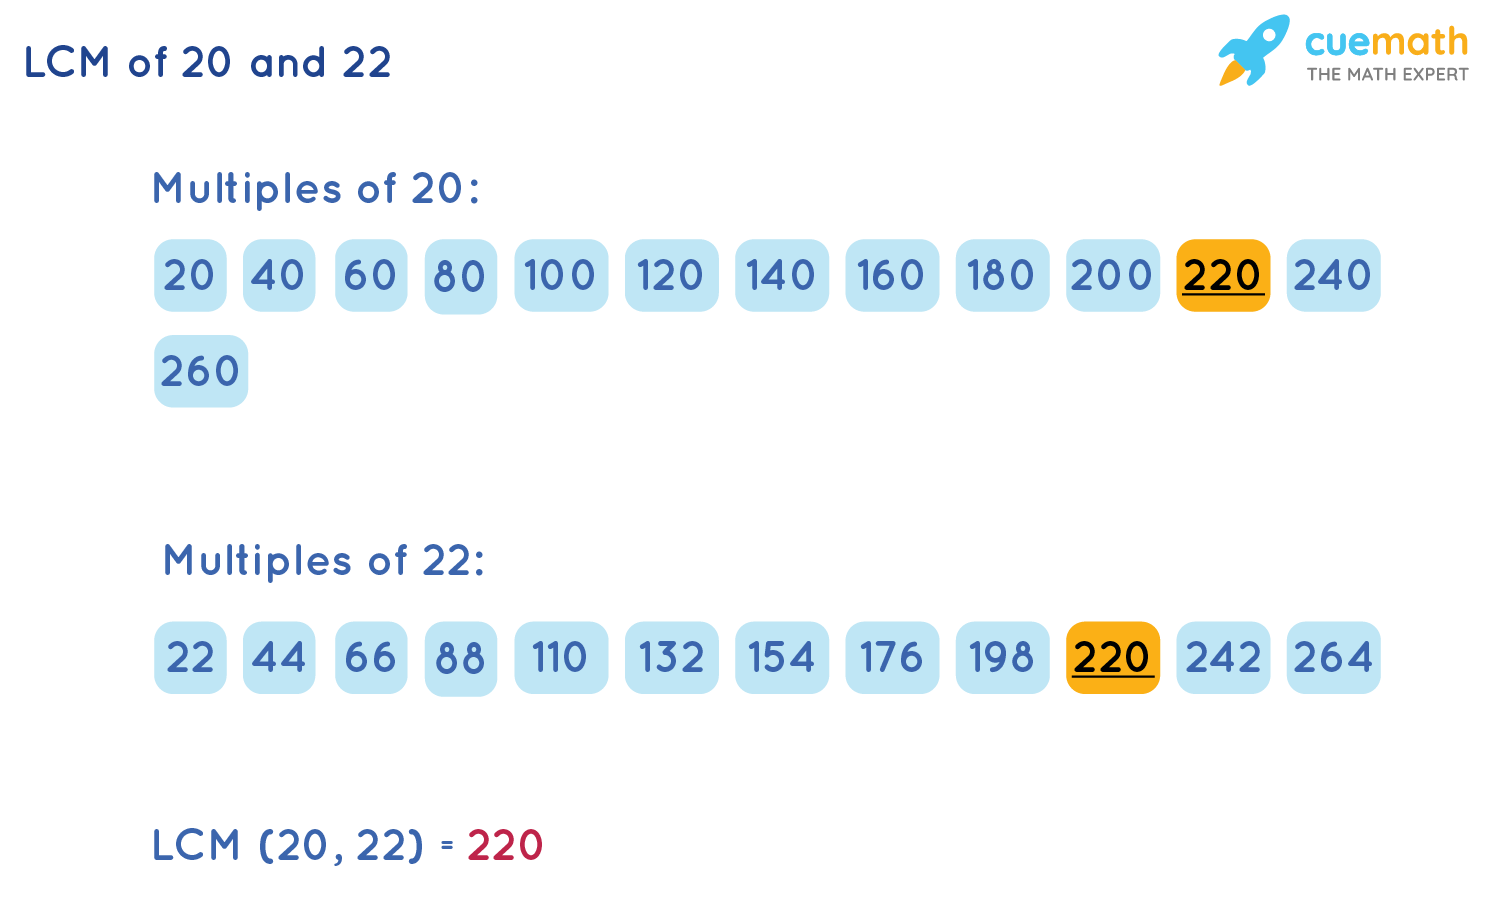 LCM of 20 and 22 by Listing Method